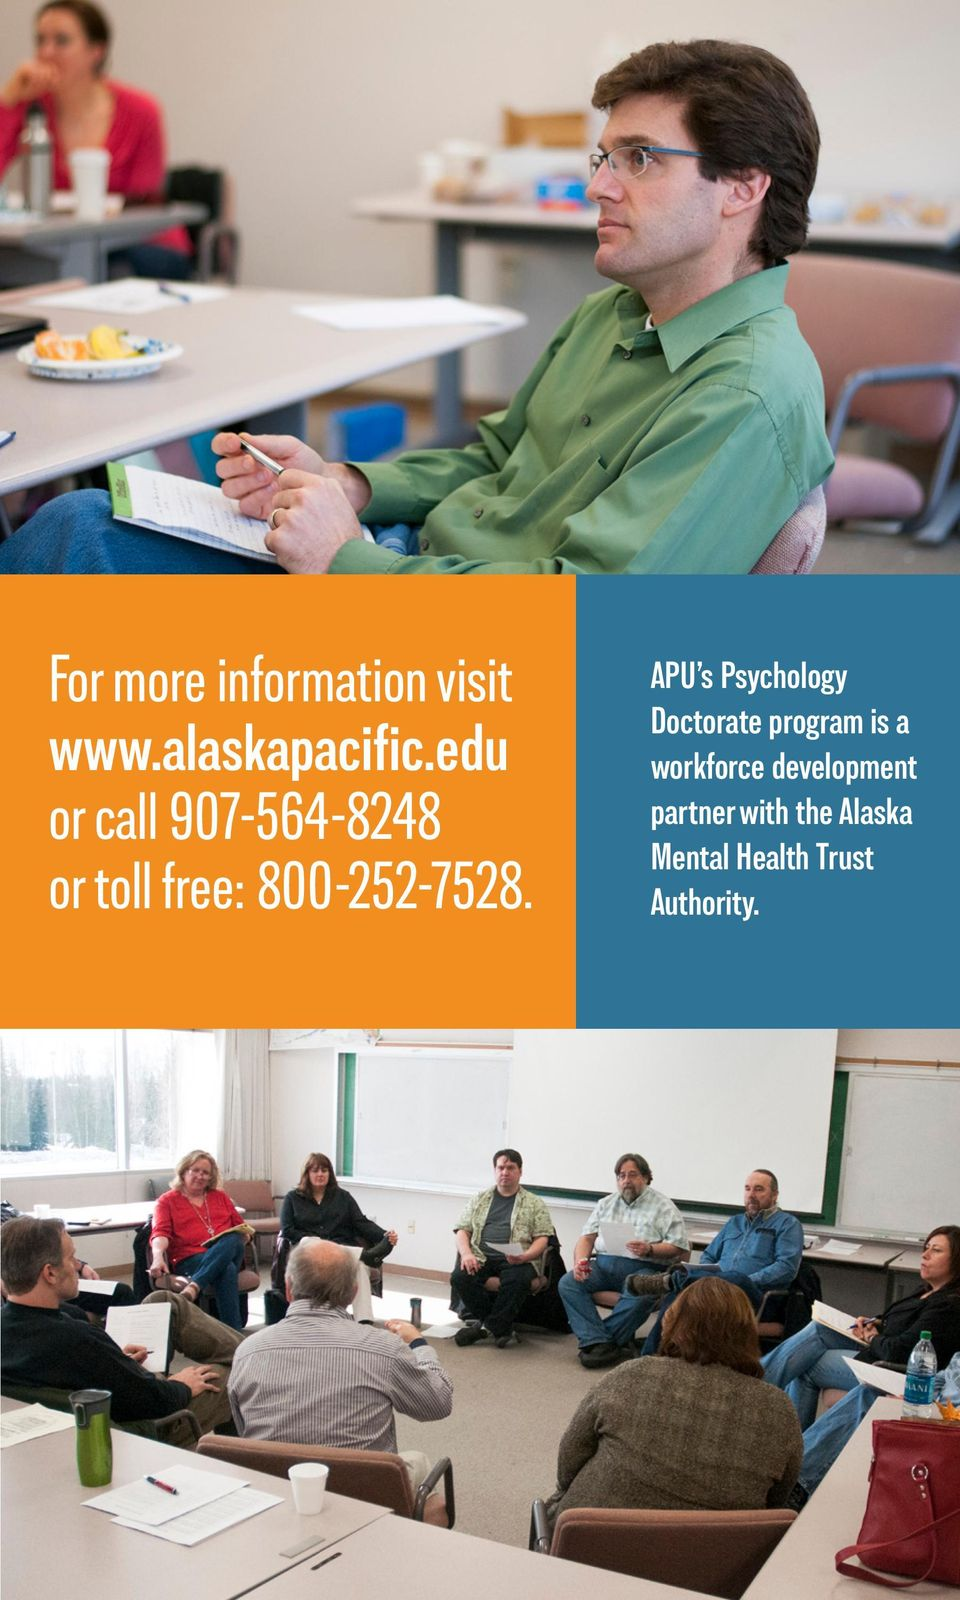 APU s Psychology Doctorate program is a workforce